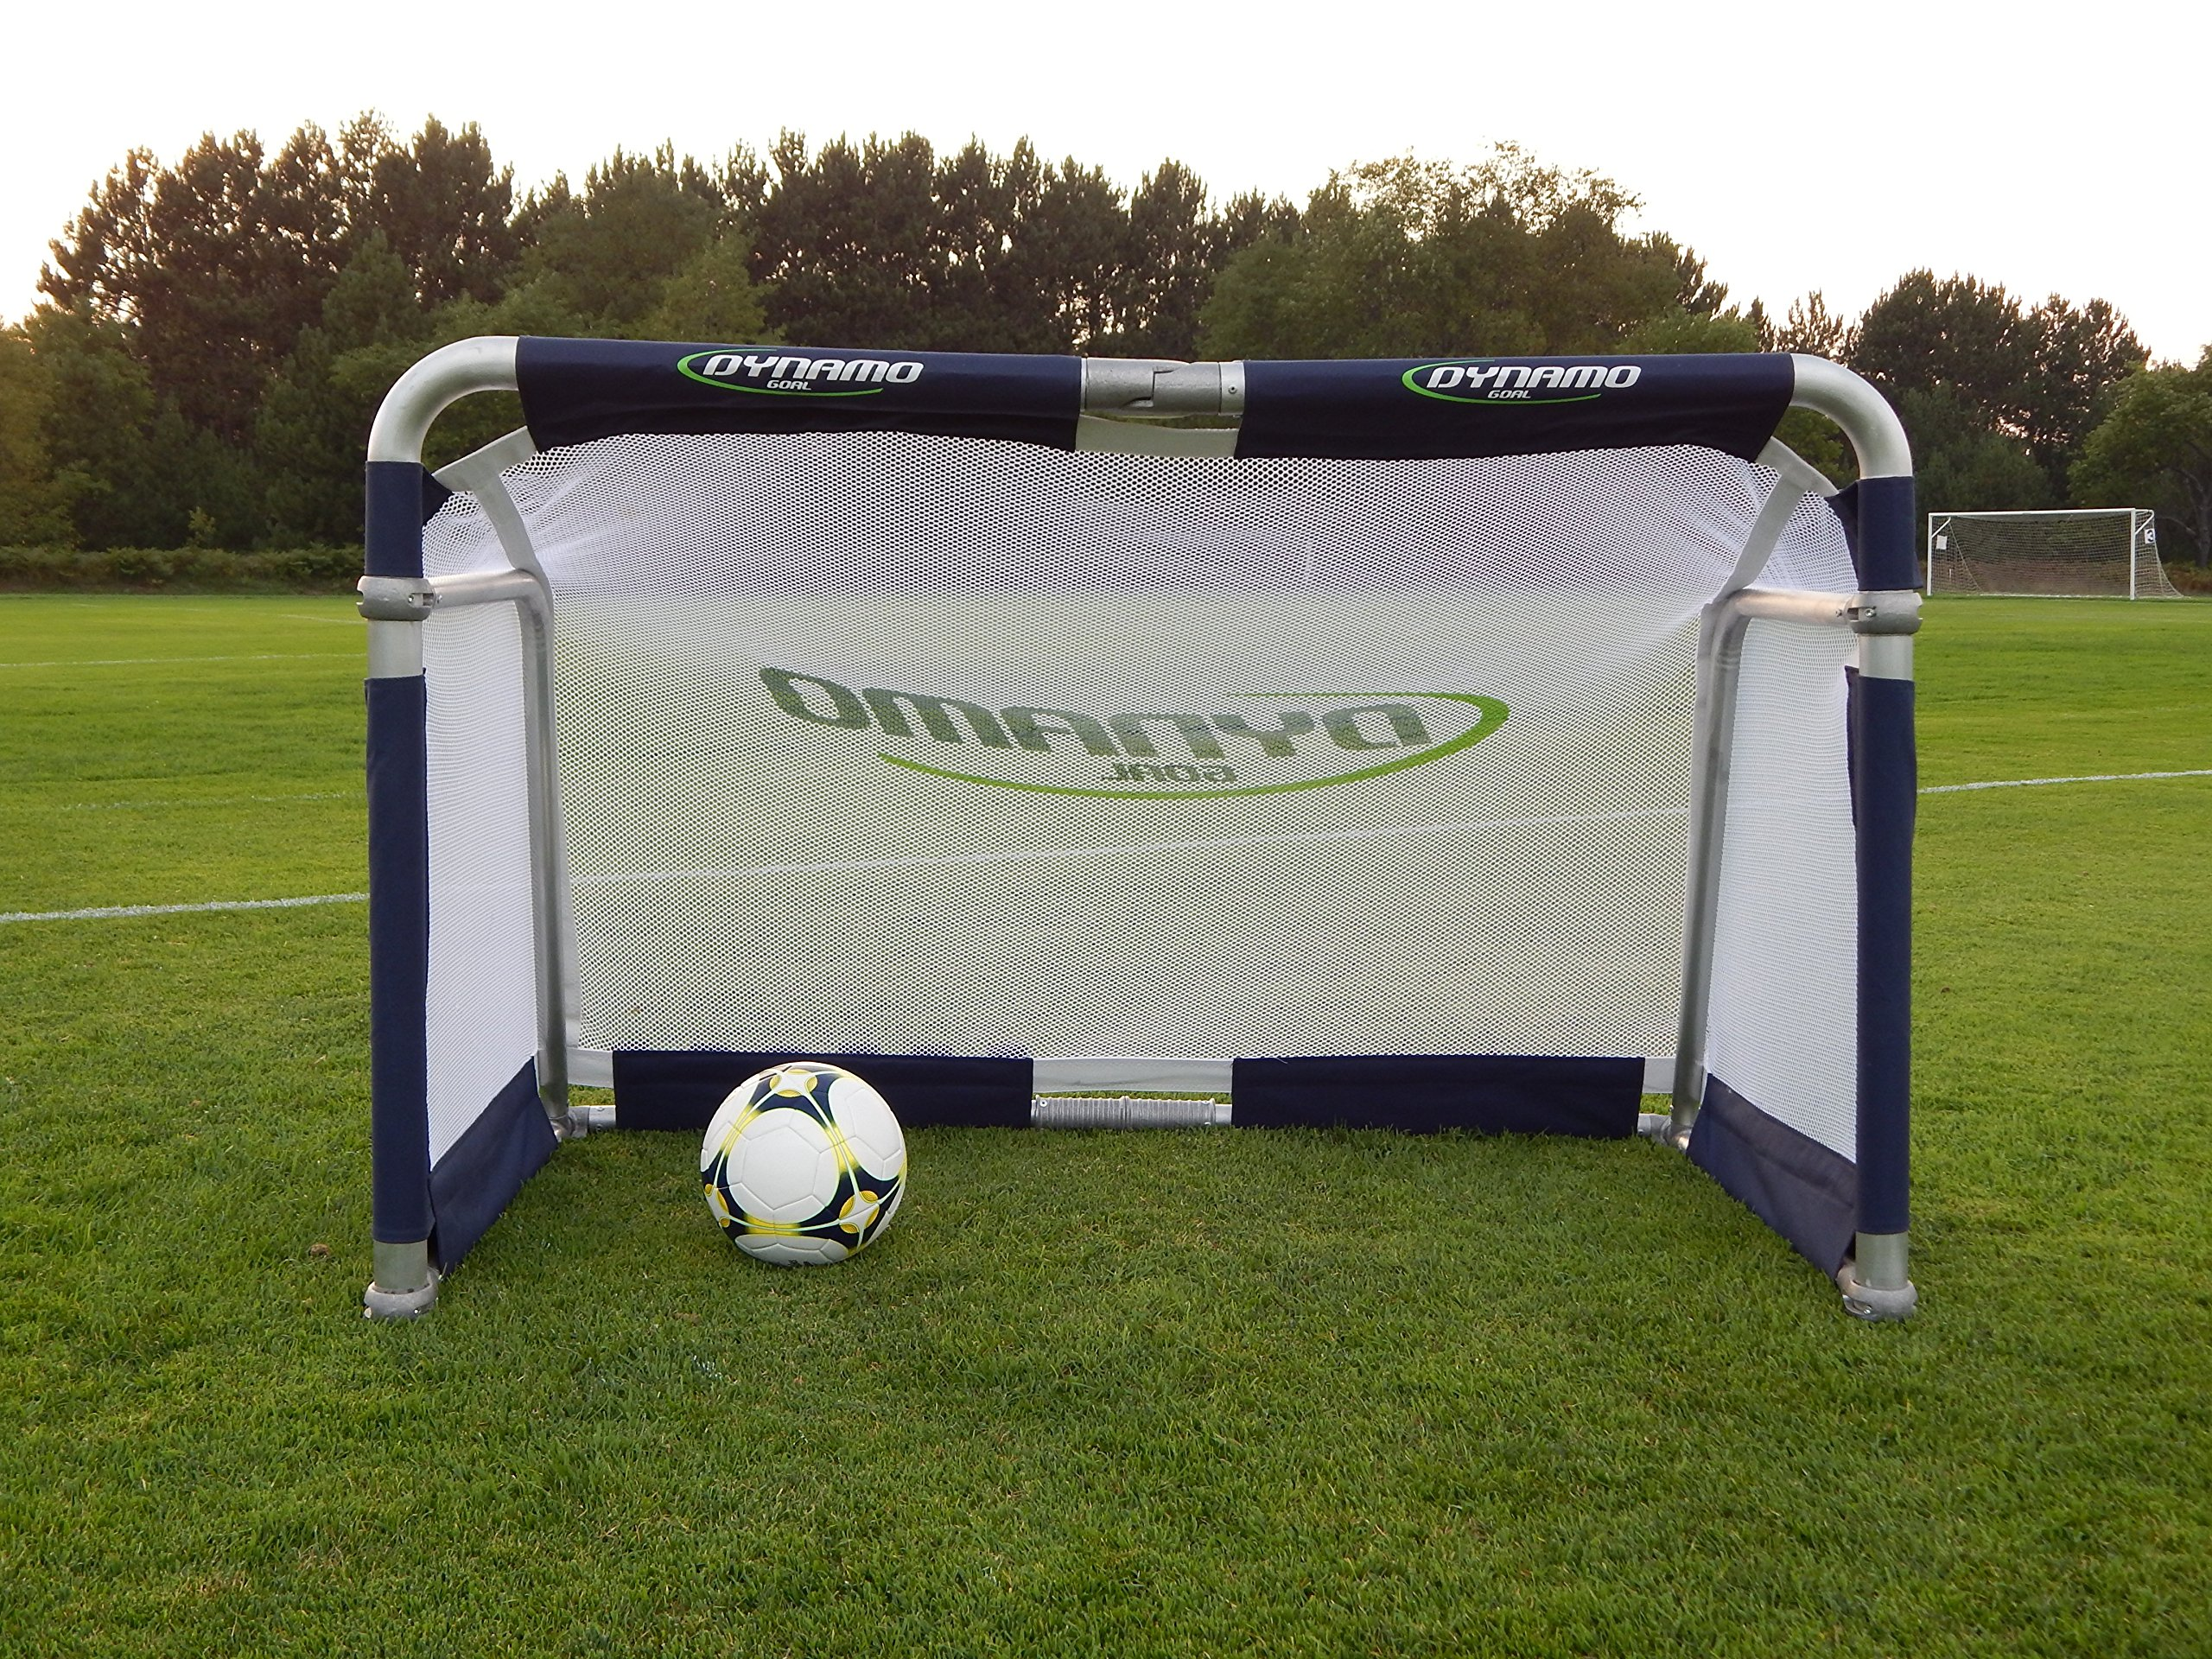 Dynamo Backyard Folding Portable Soccer Goal